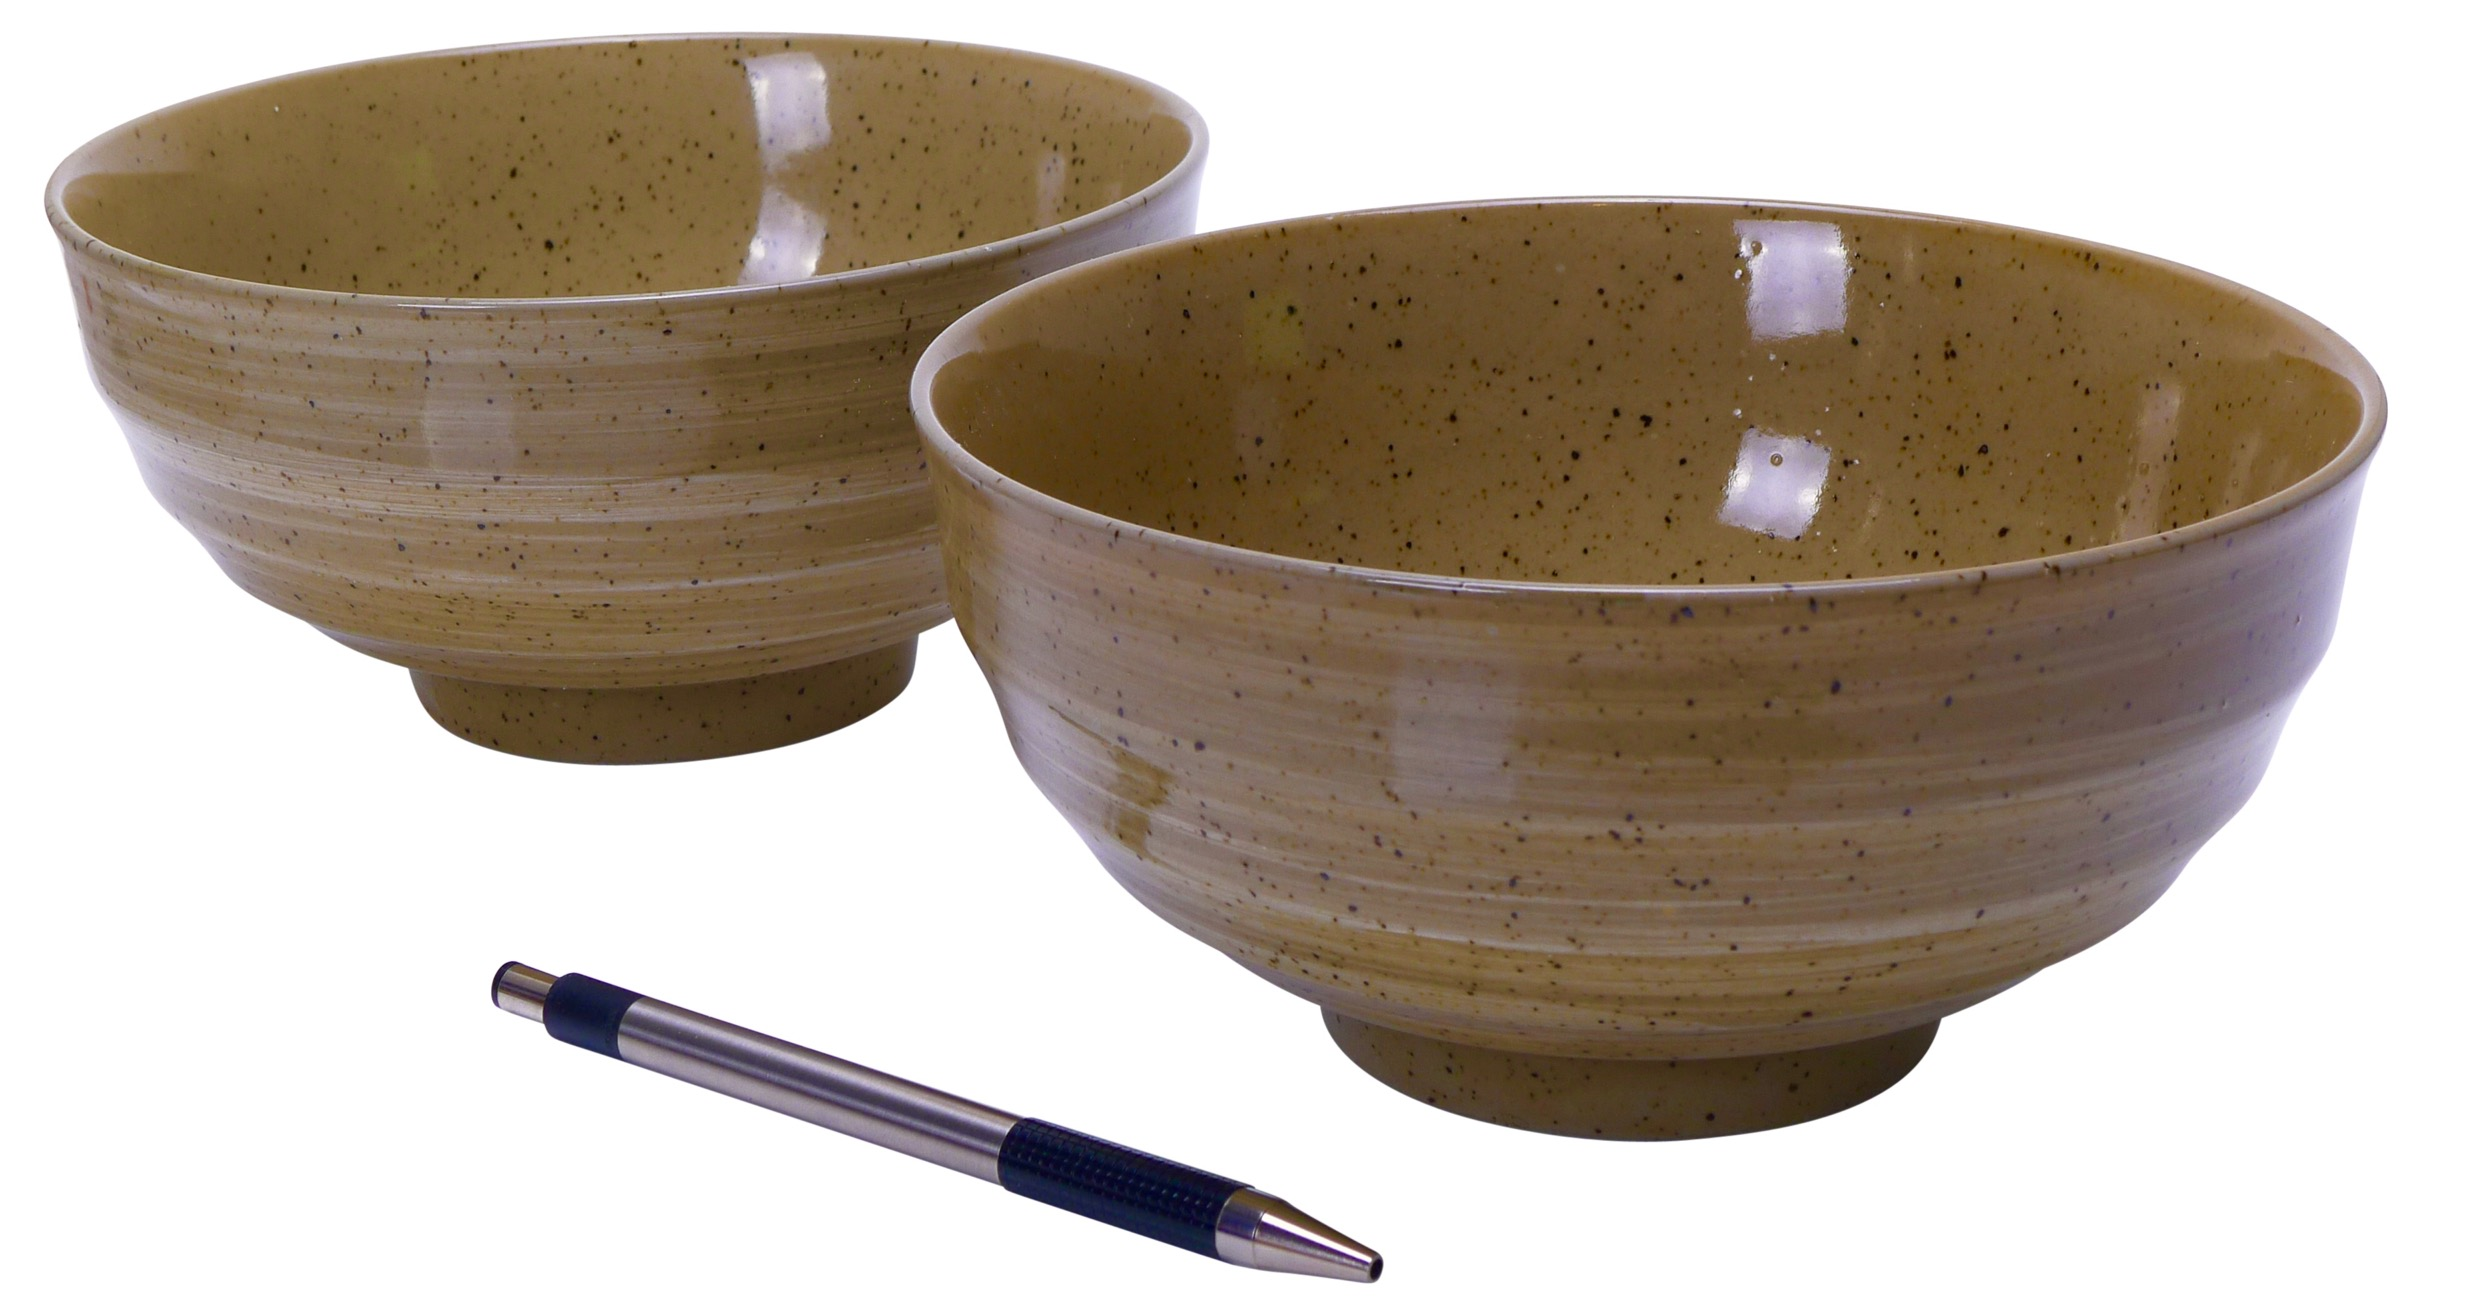 Image of Stoneware Bowls, Brown, 6.75 x 3.25-Inch, Set Of Two